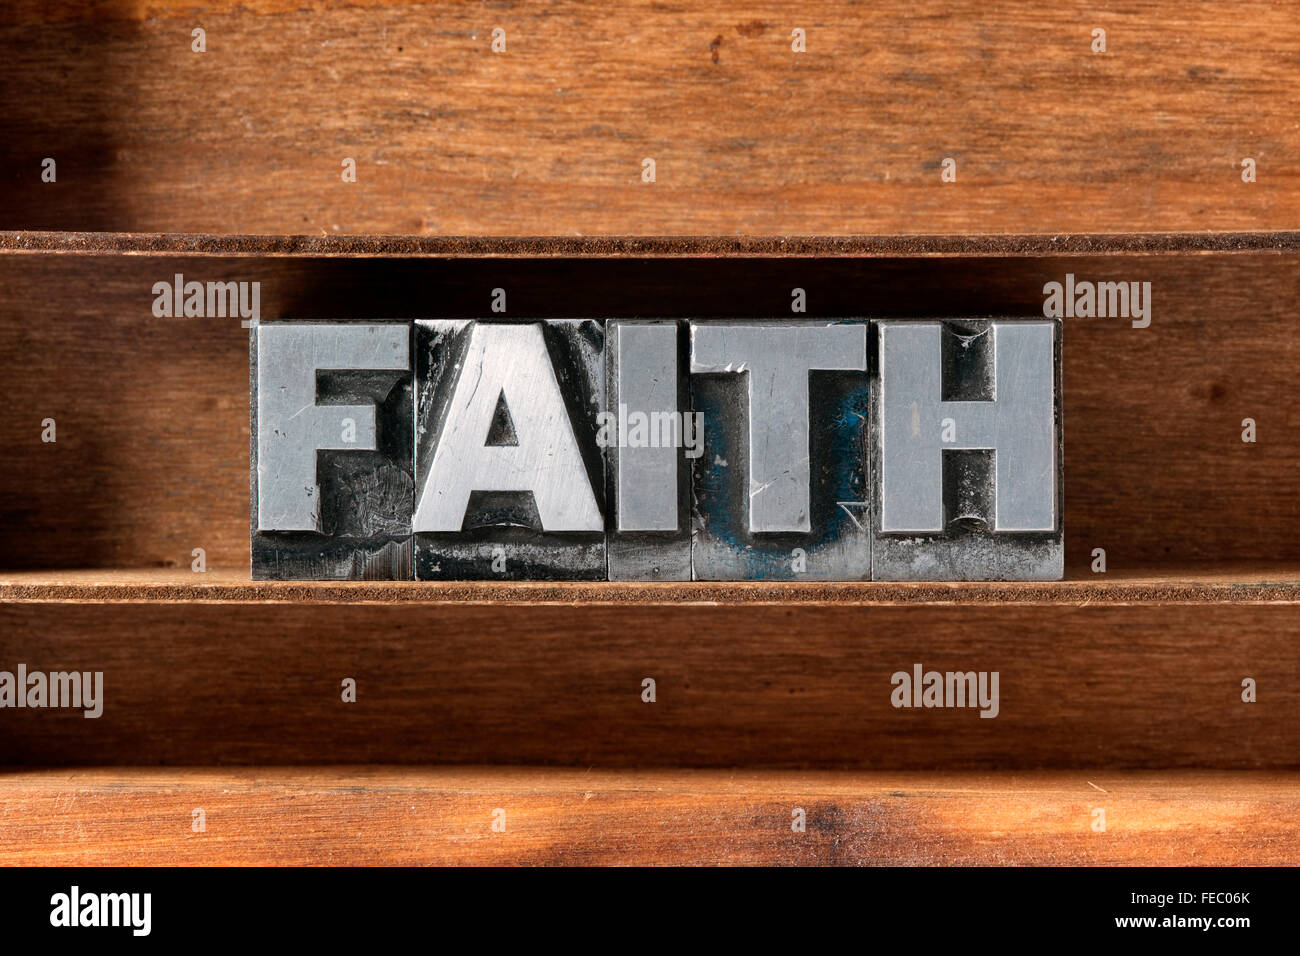 faith word made from metallic letterpress type on wooden tray Stock Photo